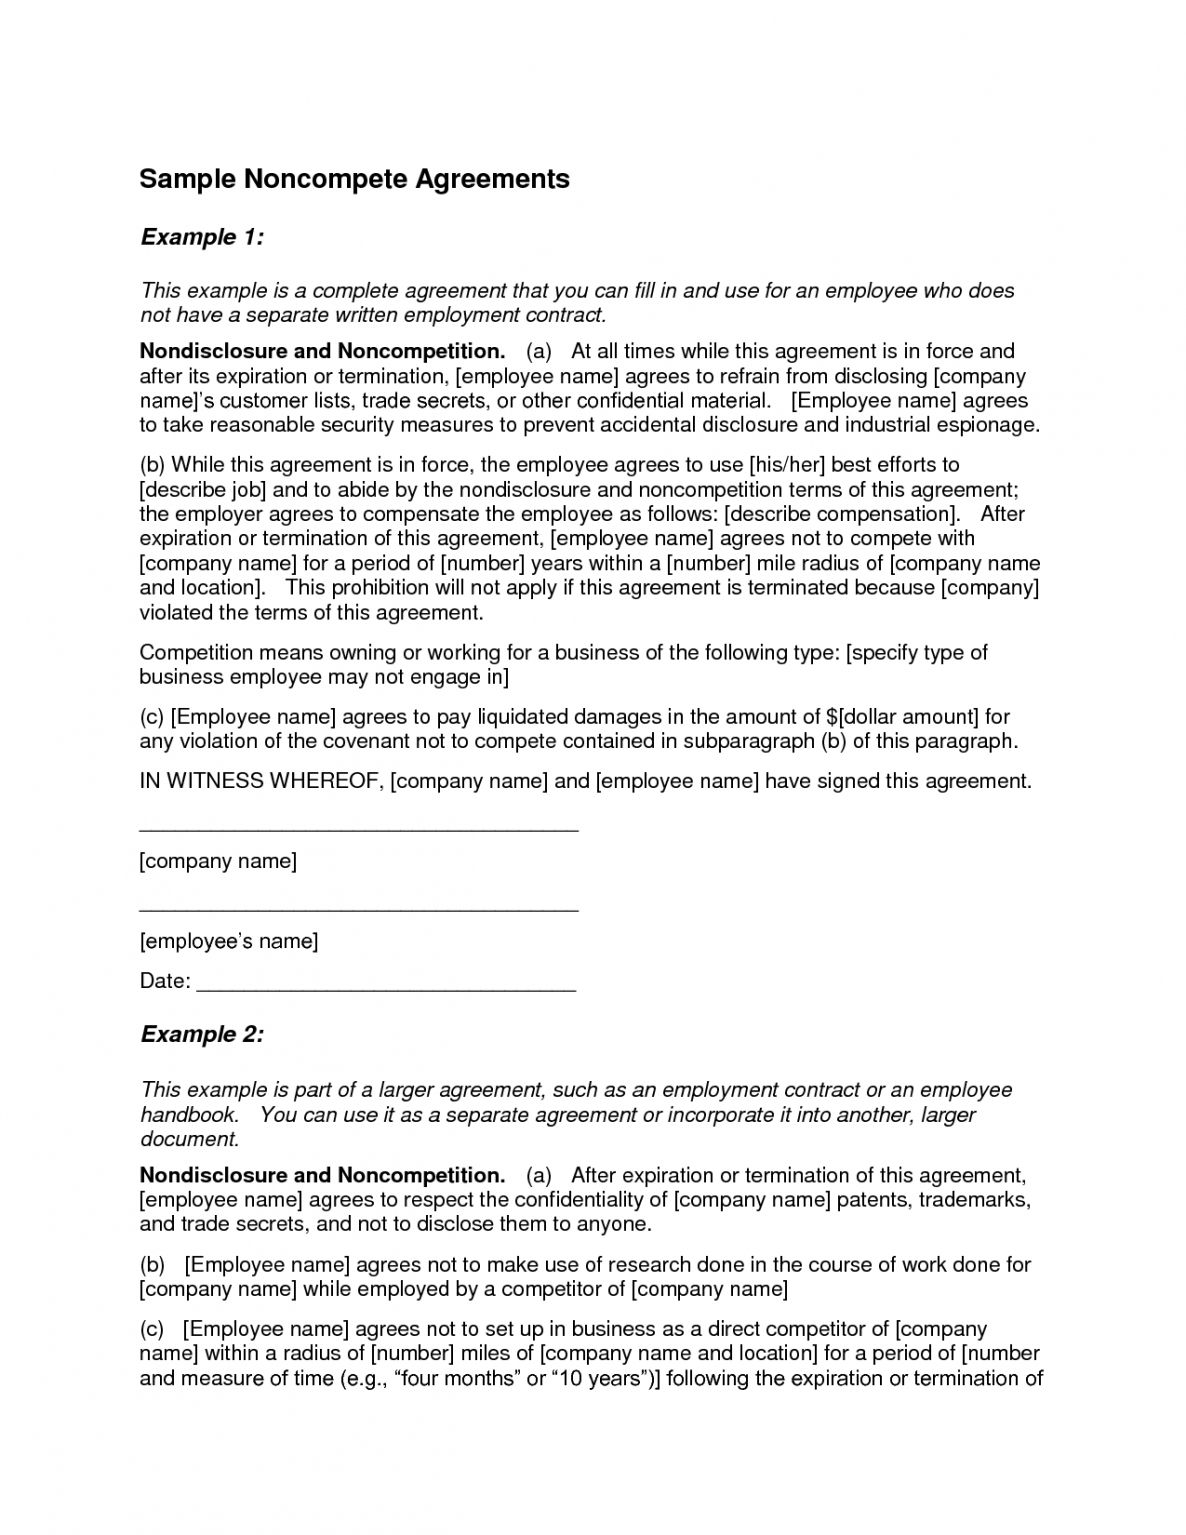 Sales Non Compete Agreement Template Excel In 2021 Sales Template Agreement Professional Templates Non compete agreement massachusetts template